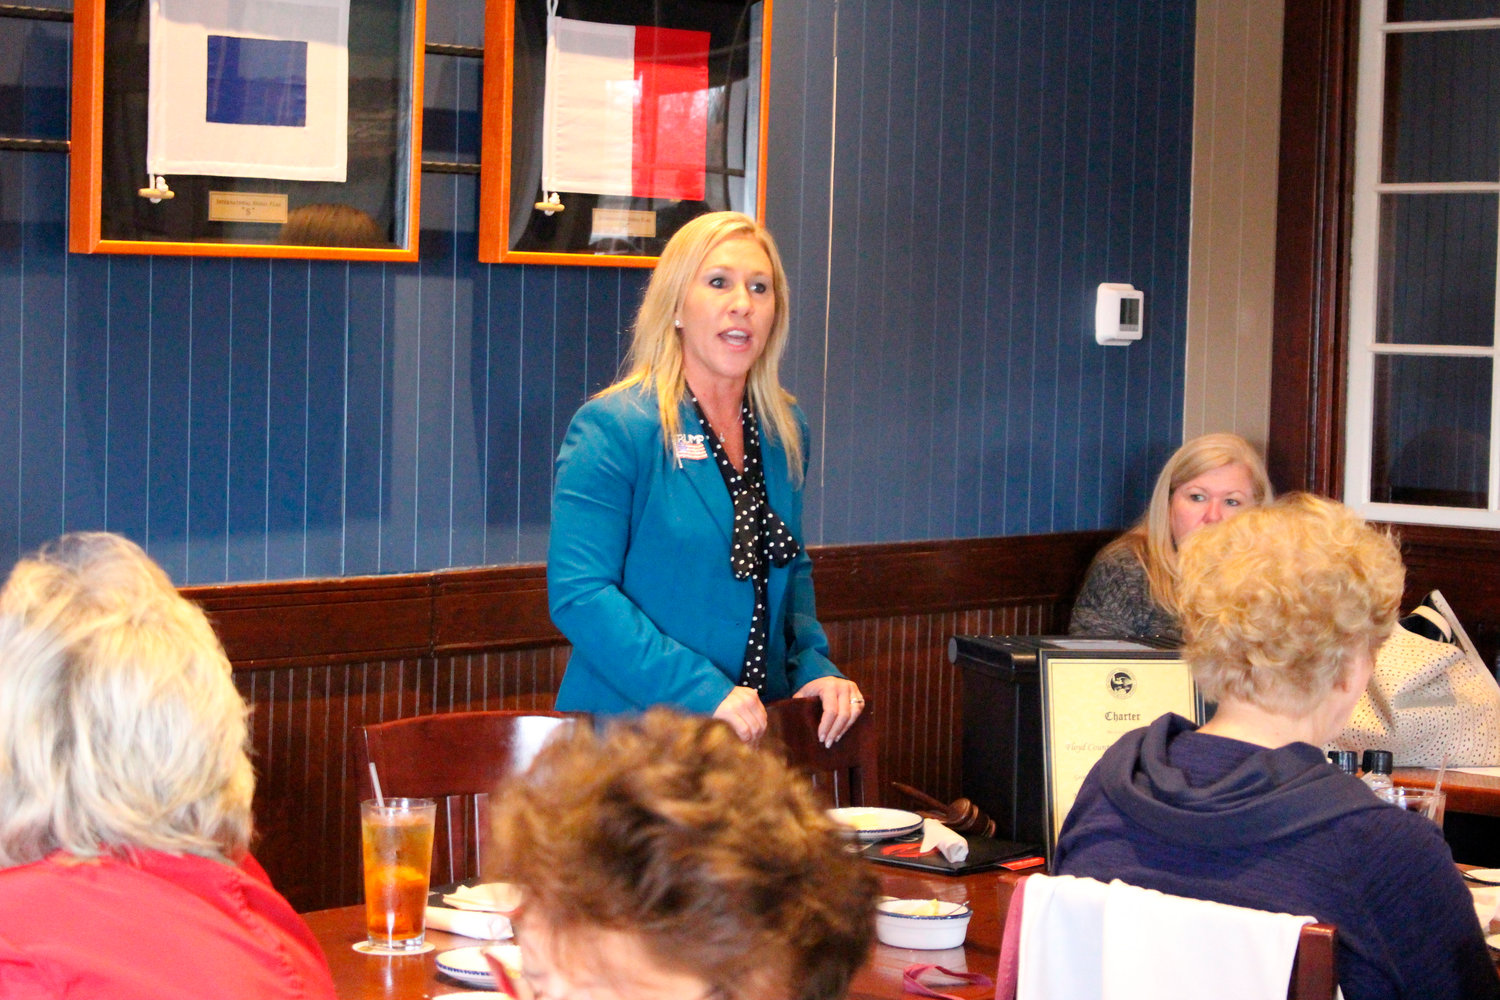 Republican Marjorie Taylor Greene speaks to a GOP women's group on March 3, 2020, in Rome, Ga. Greene is one of nine Republicans seeking her party's nomination in Georgia's 14th Congressional District on Tuesday, June 9, 2020. (John Bailey/Rome News-Tribune via AP)